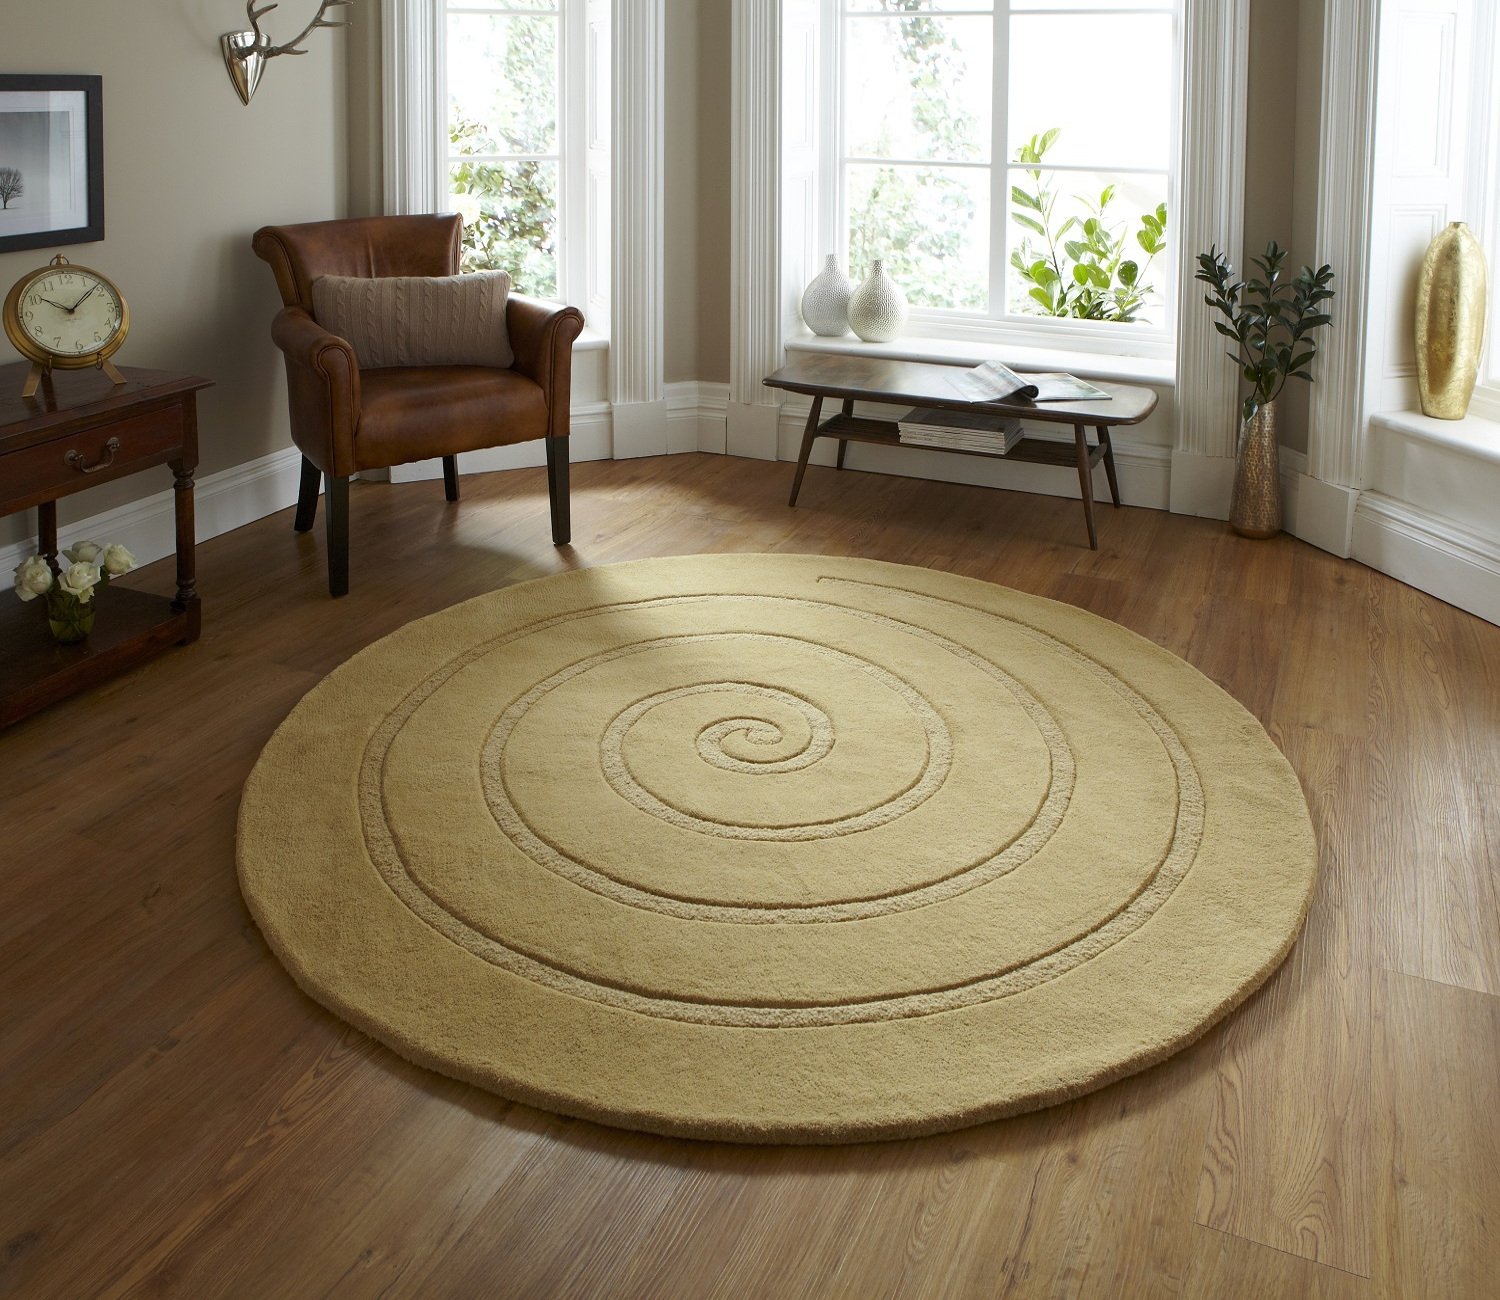 Large Round Rugs Home Decors Collection In Small Circular Rugs (Image 8 of 15)